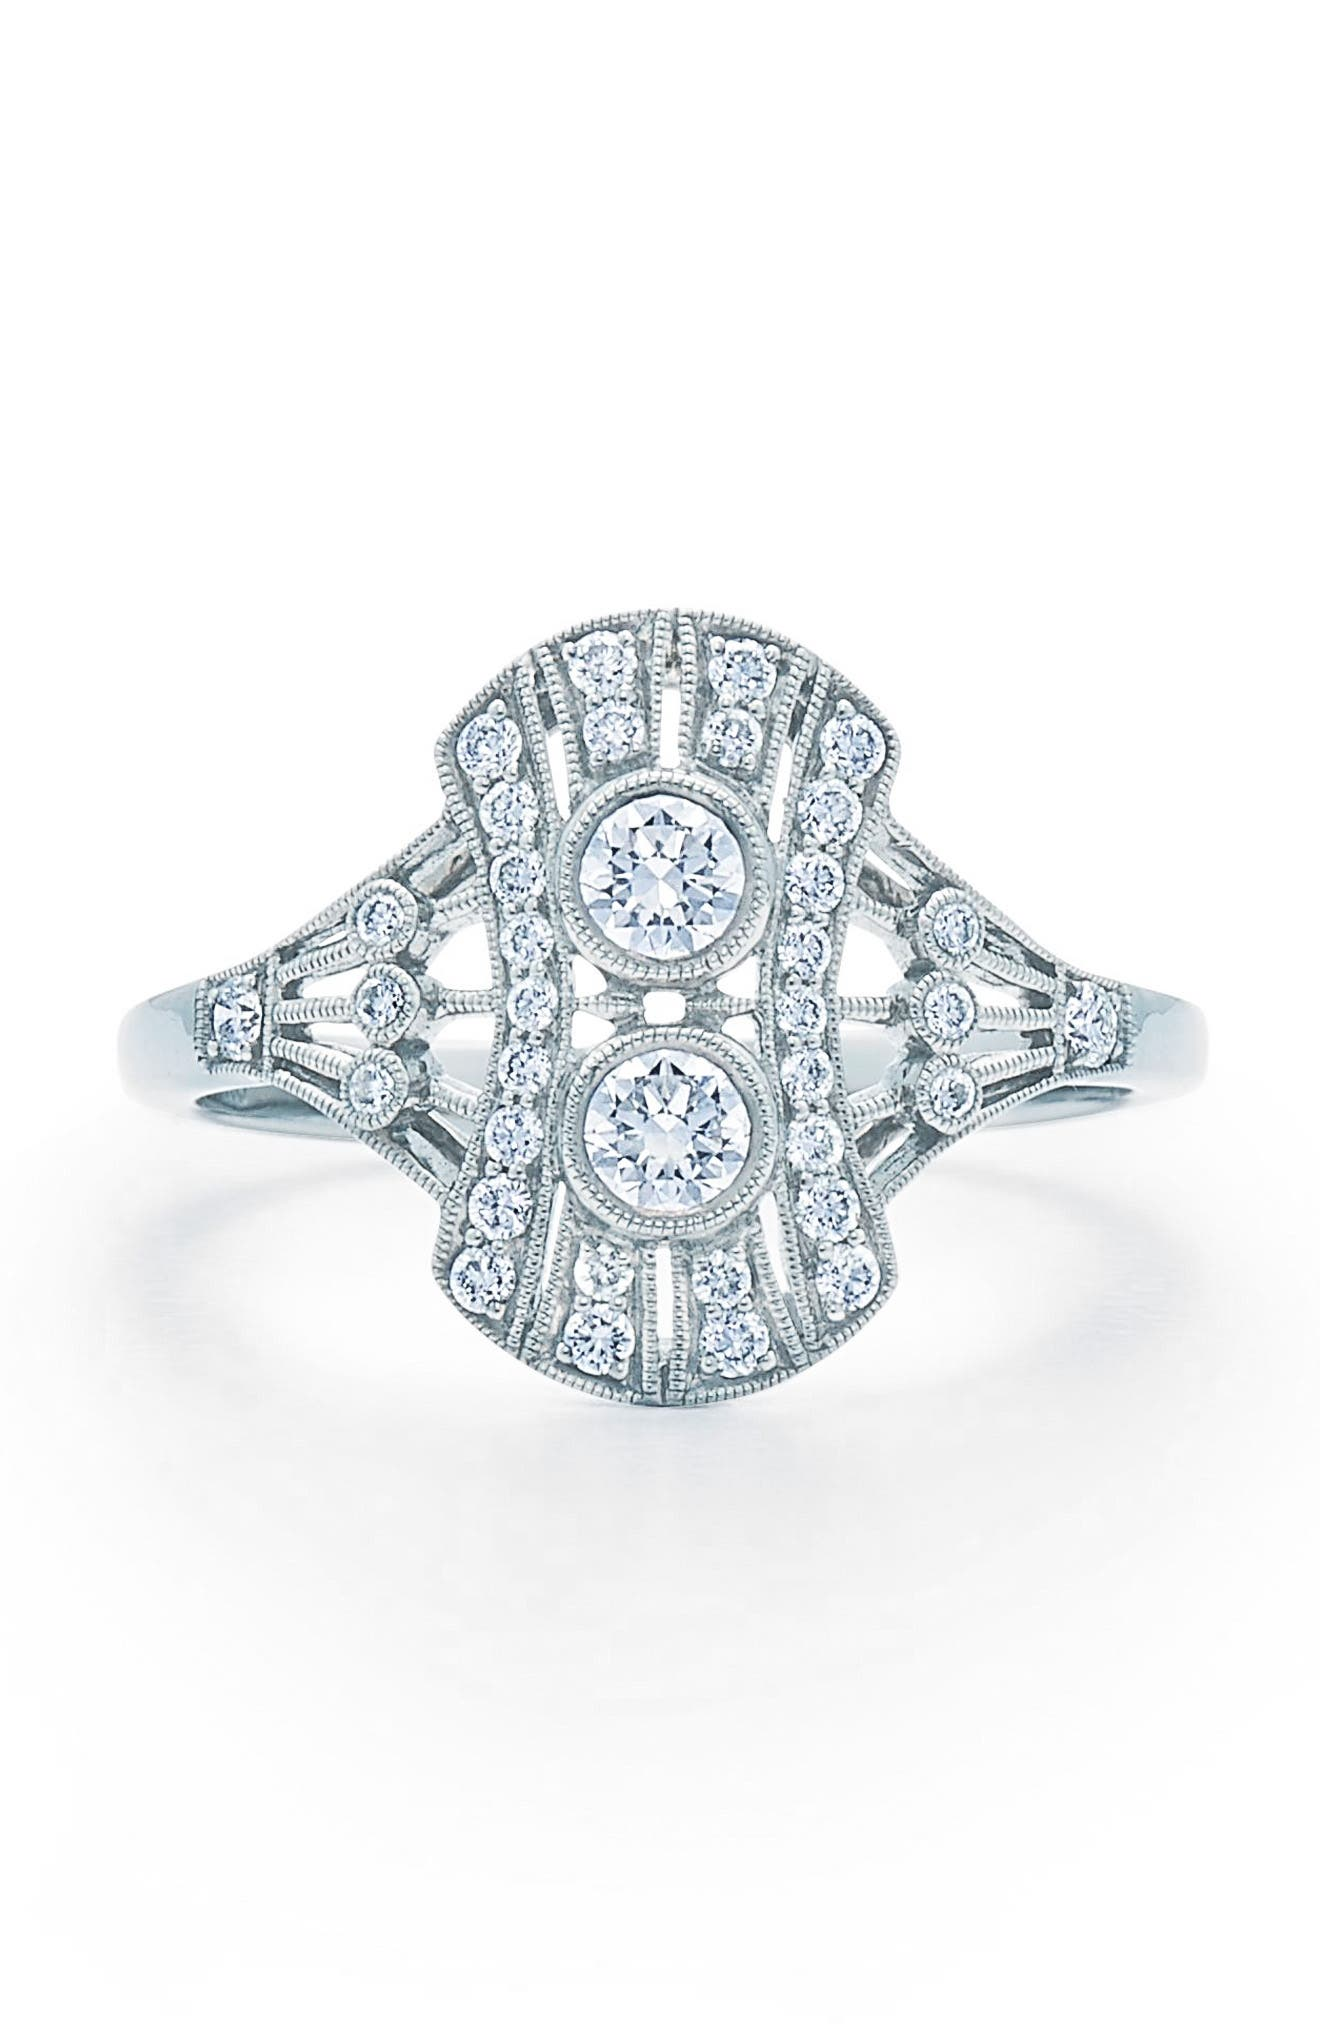 Main Image - Kwiat Vintage Oval Diamond Ring